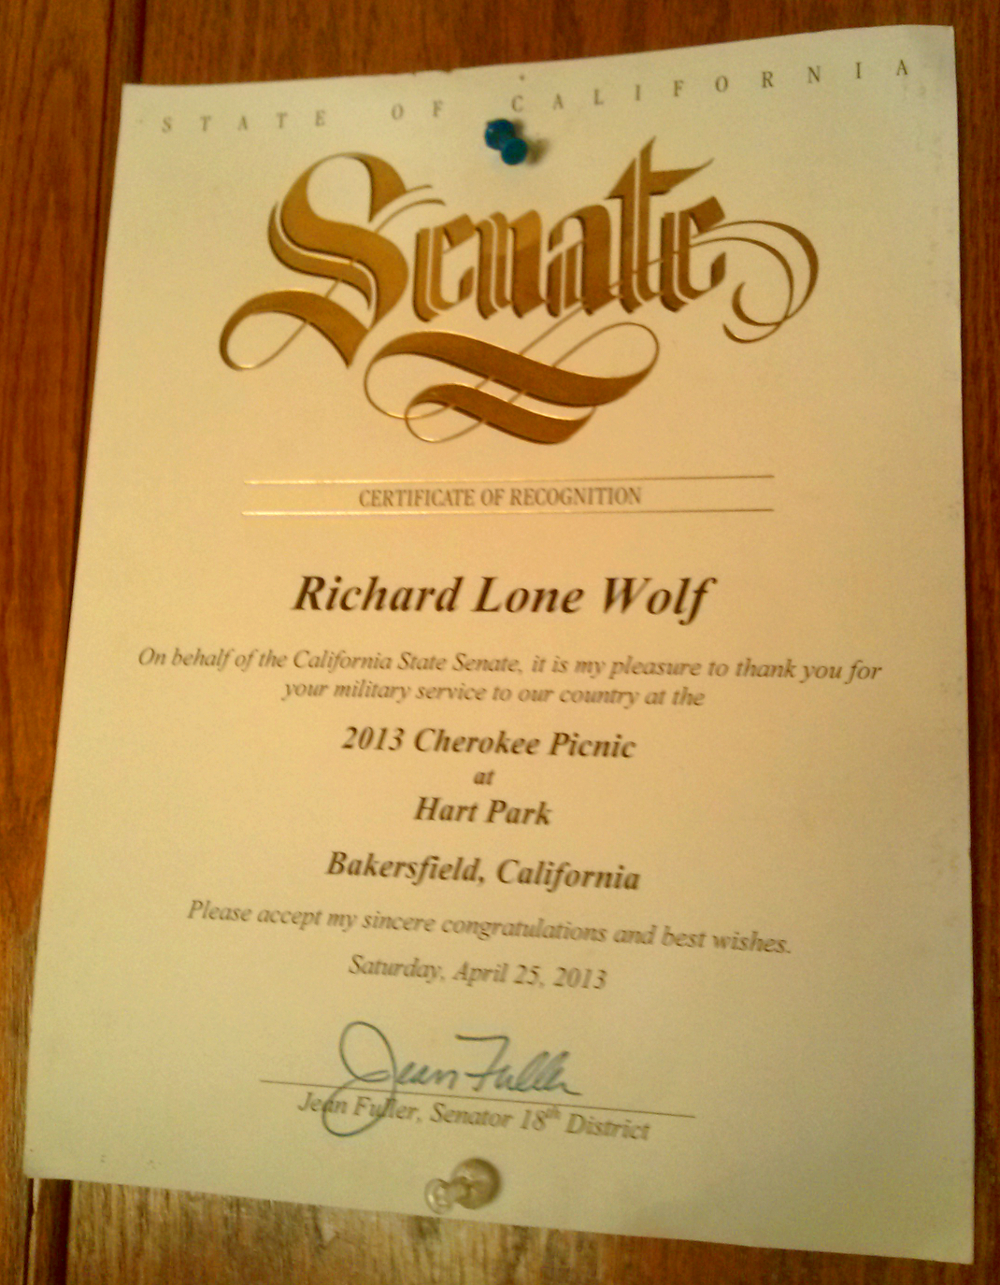 Senate honors lonewolf closeup